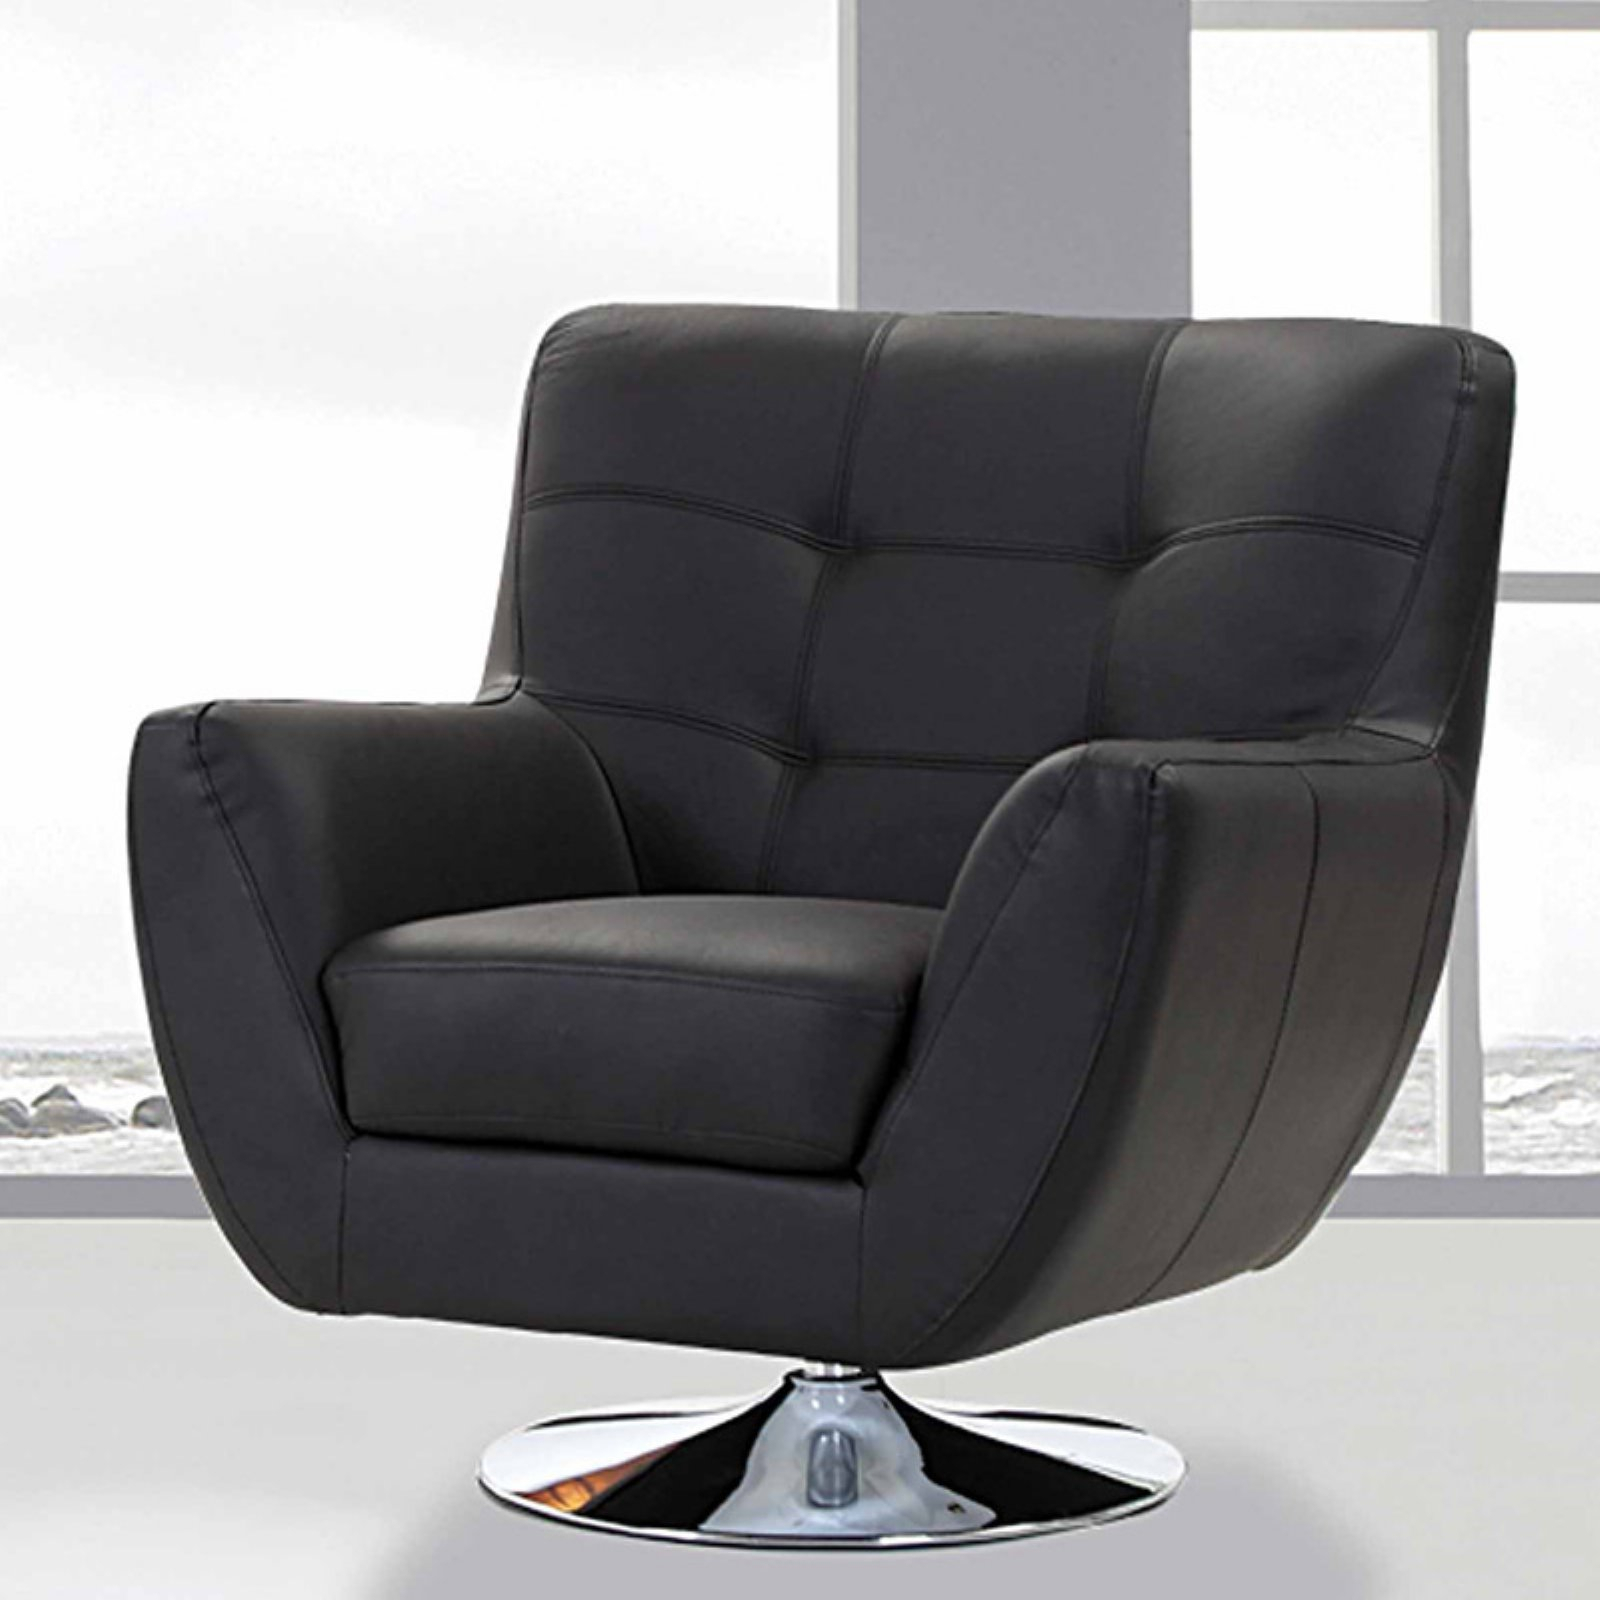 Creative Images International Swivel Accent Chair – Black With Regard To Swivel Sofa Chairs (View 2 of 15)